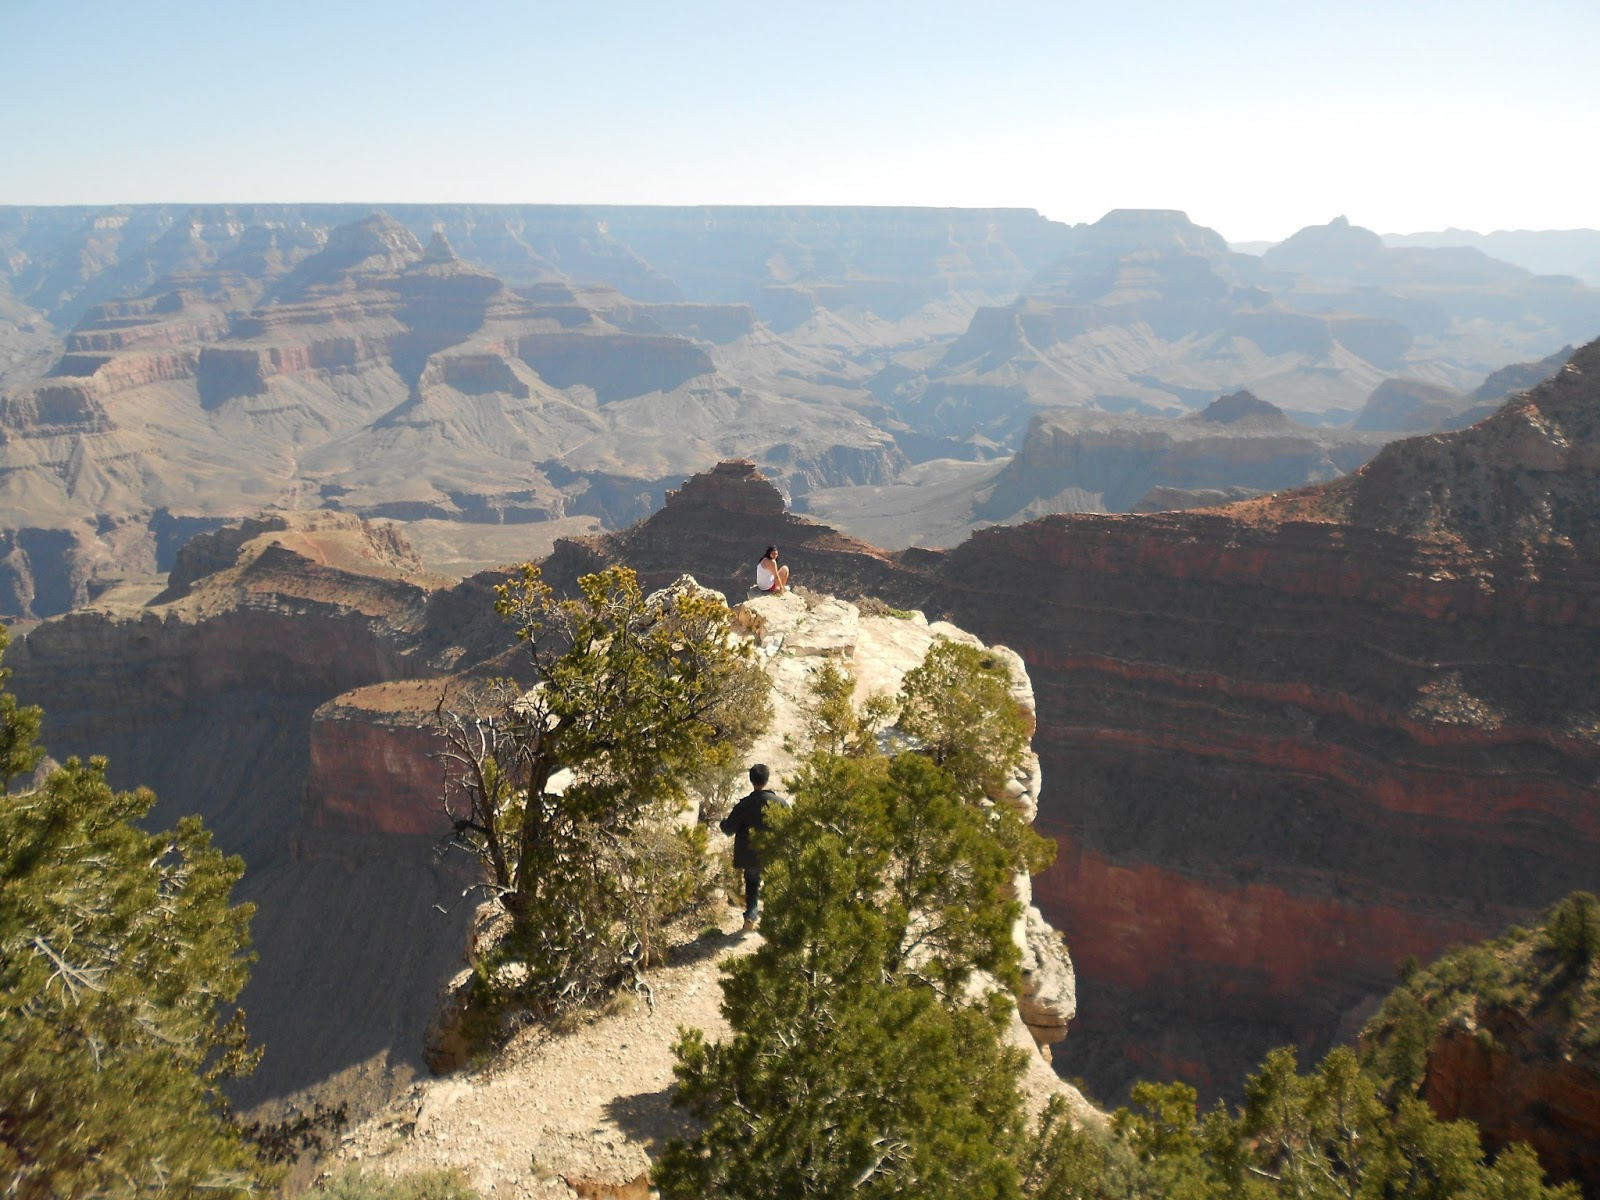 grand canyon experience Experience the iconic south rim of the grand canyon on a trip in a comfortable limo van from the las vegas strip.